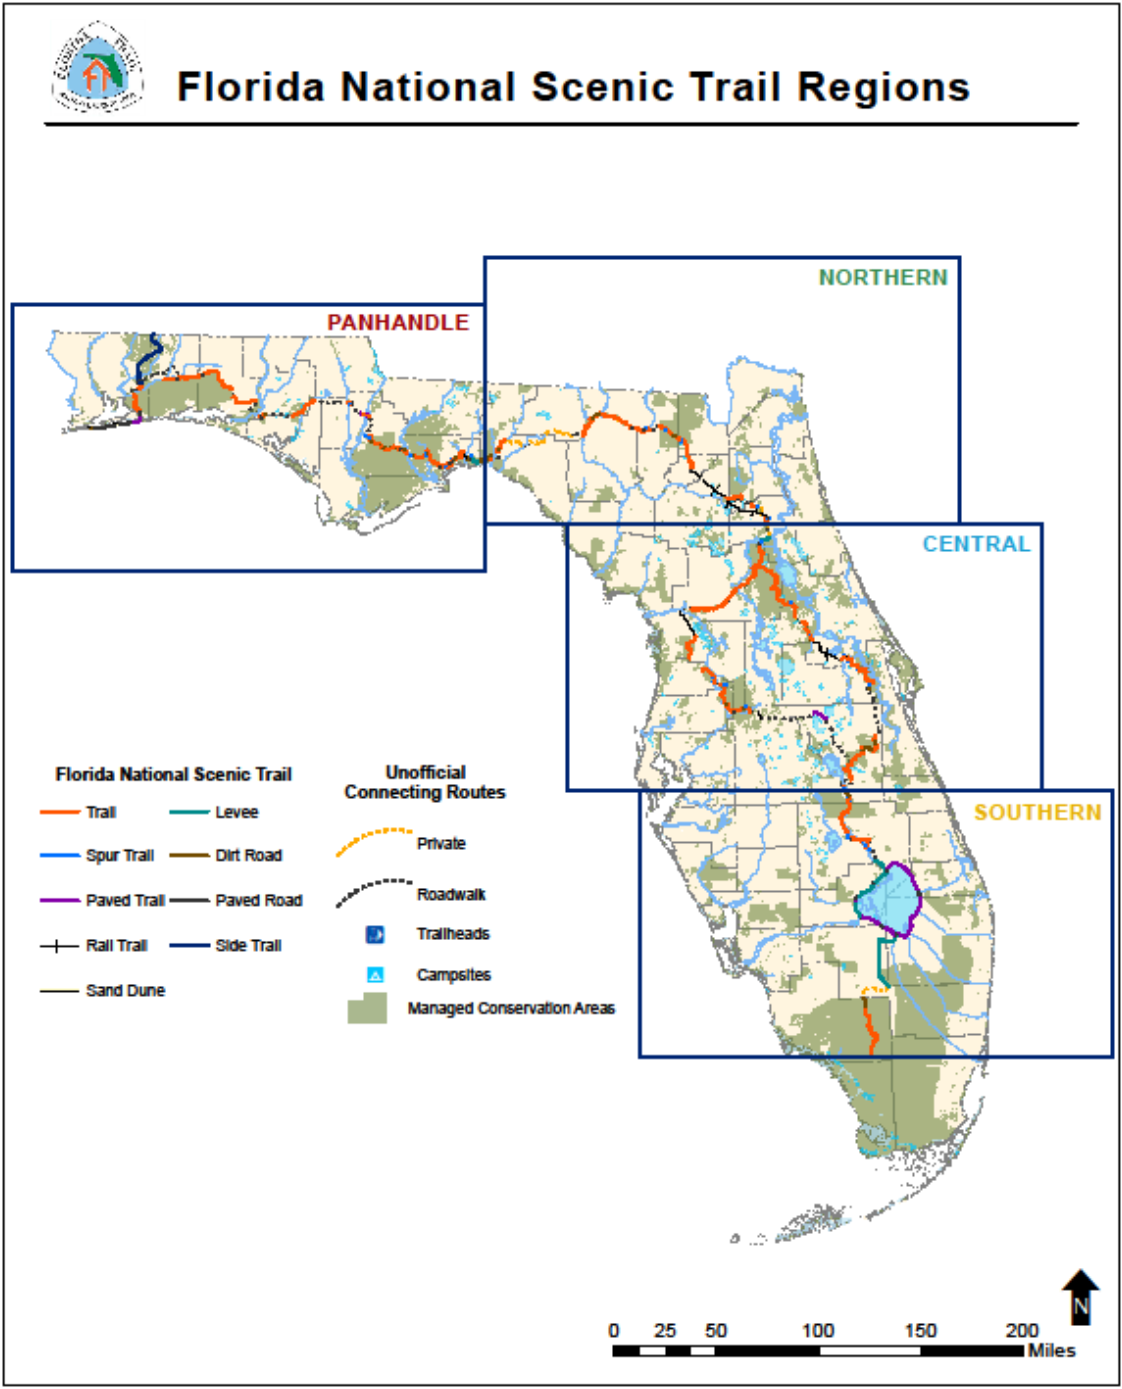 Florida National Scenic Trail - About the Trail